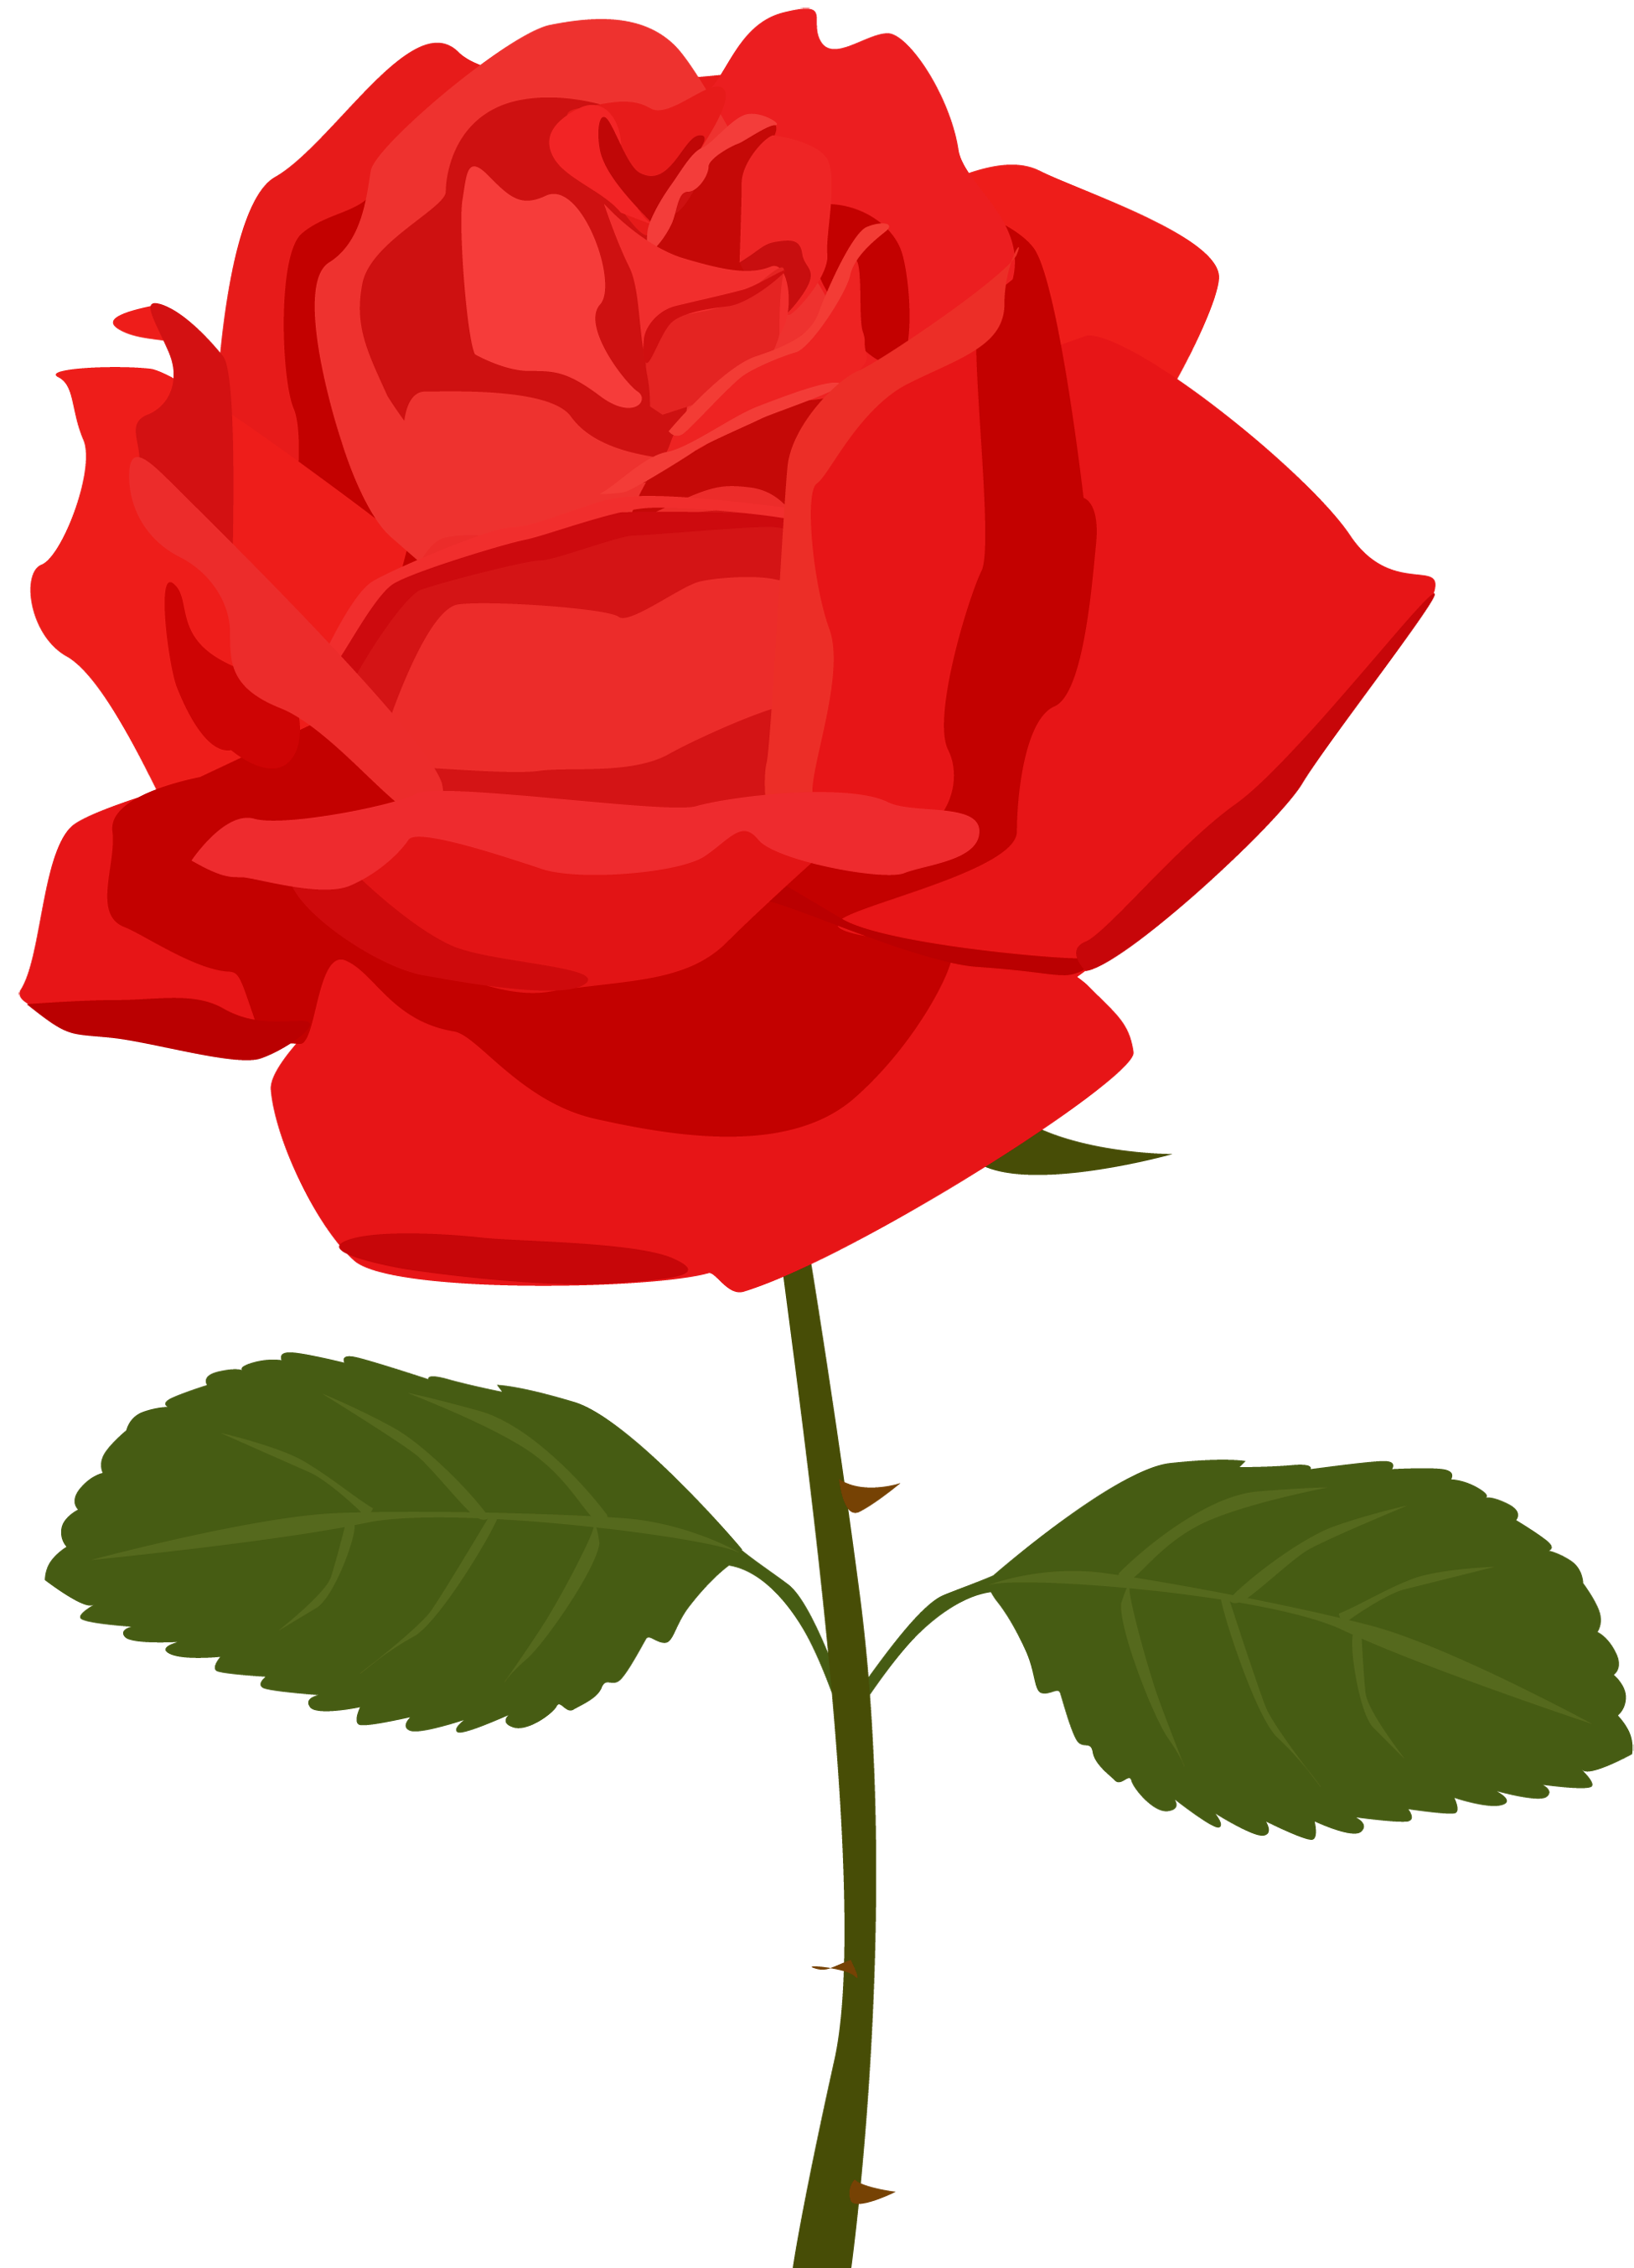 red roses clipart - photo #19